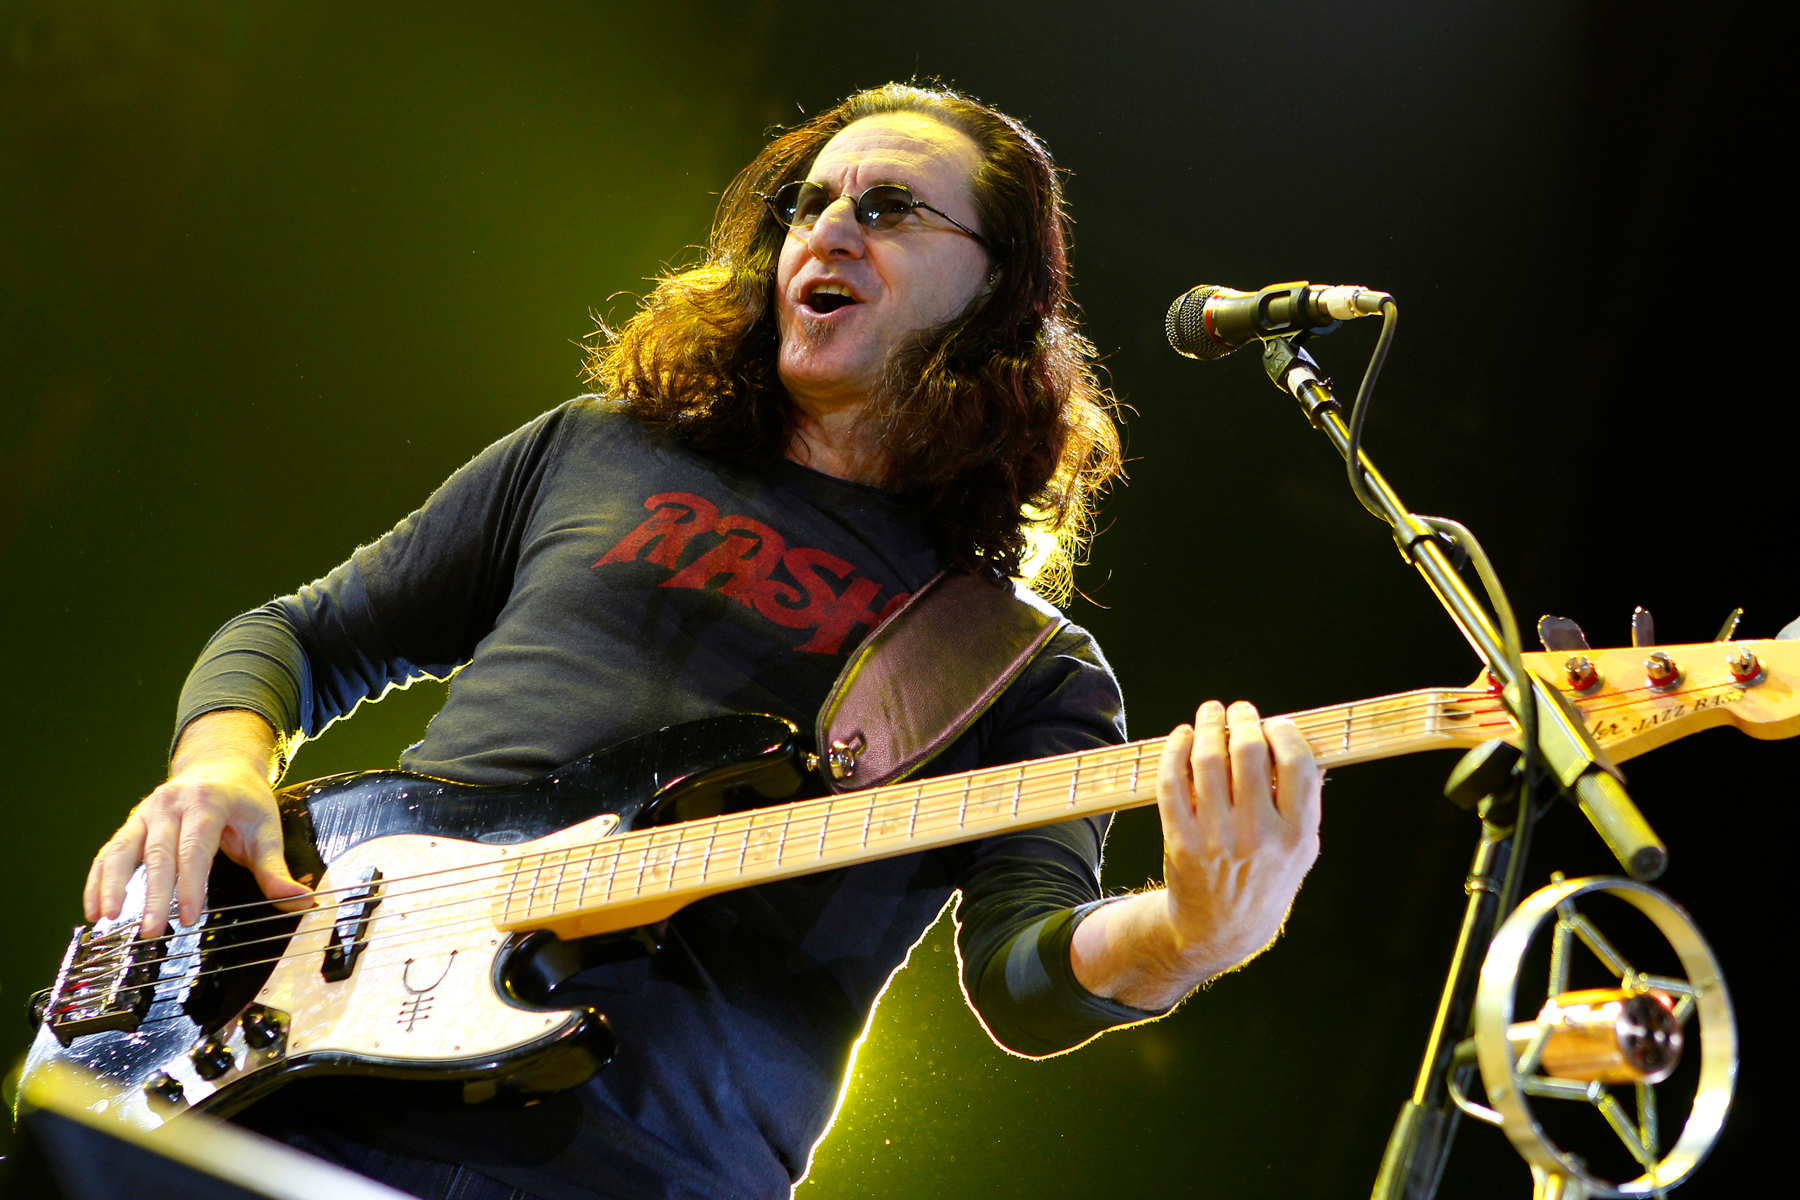 Geddy Lee of Rush performs at O2 Arena on May 25, 2011 in London, England.